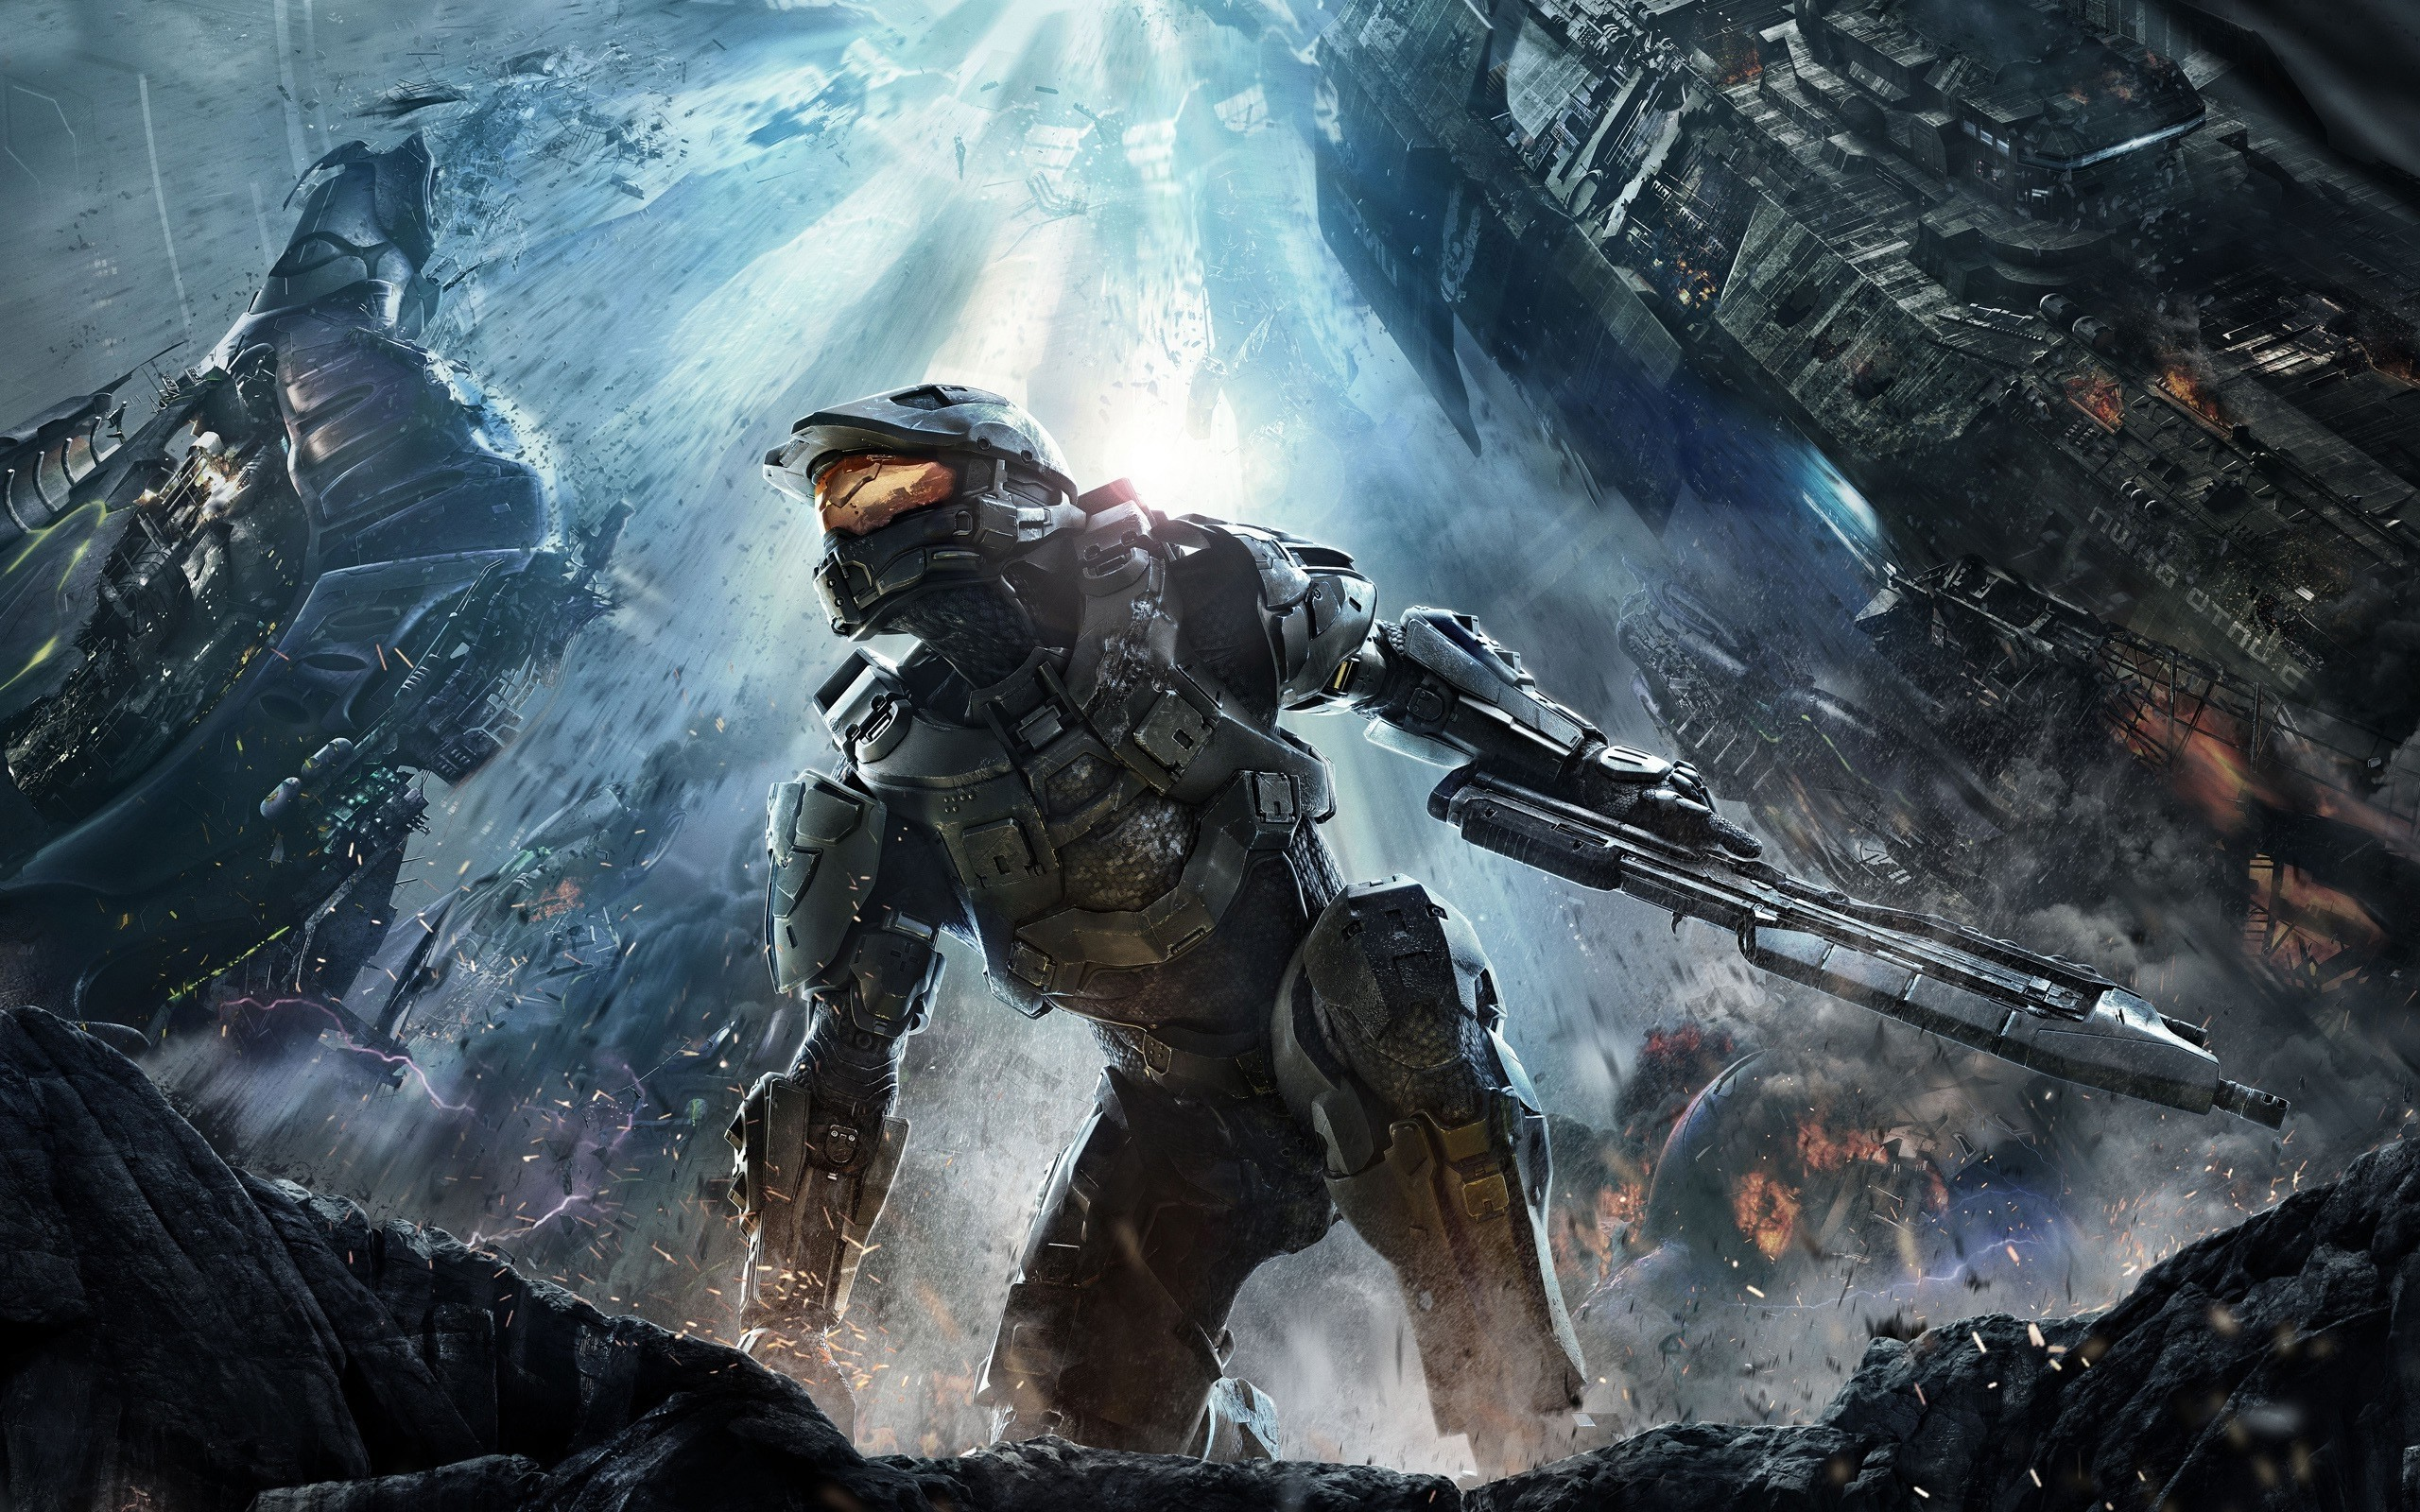 Halo 4 hd backgrounds 79 images - Halo 4 photos ...